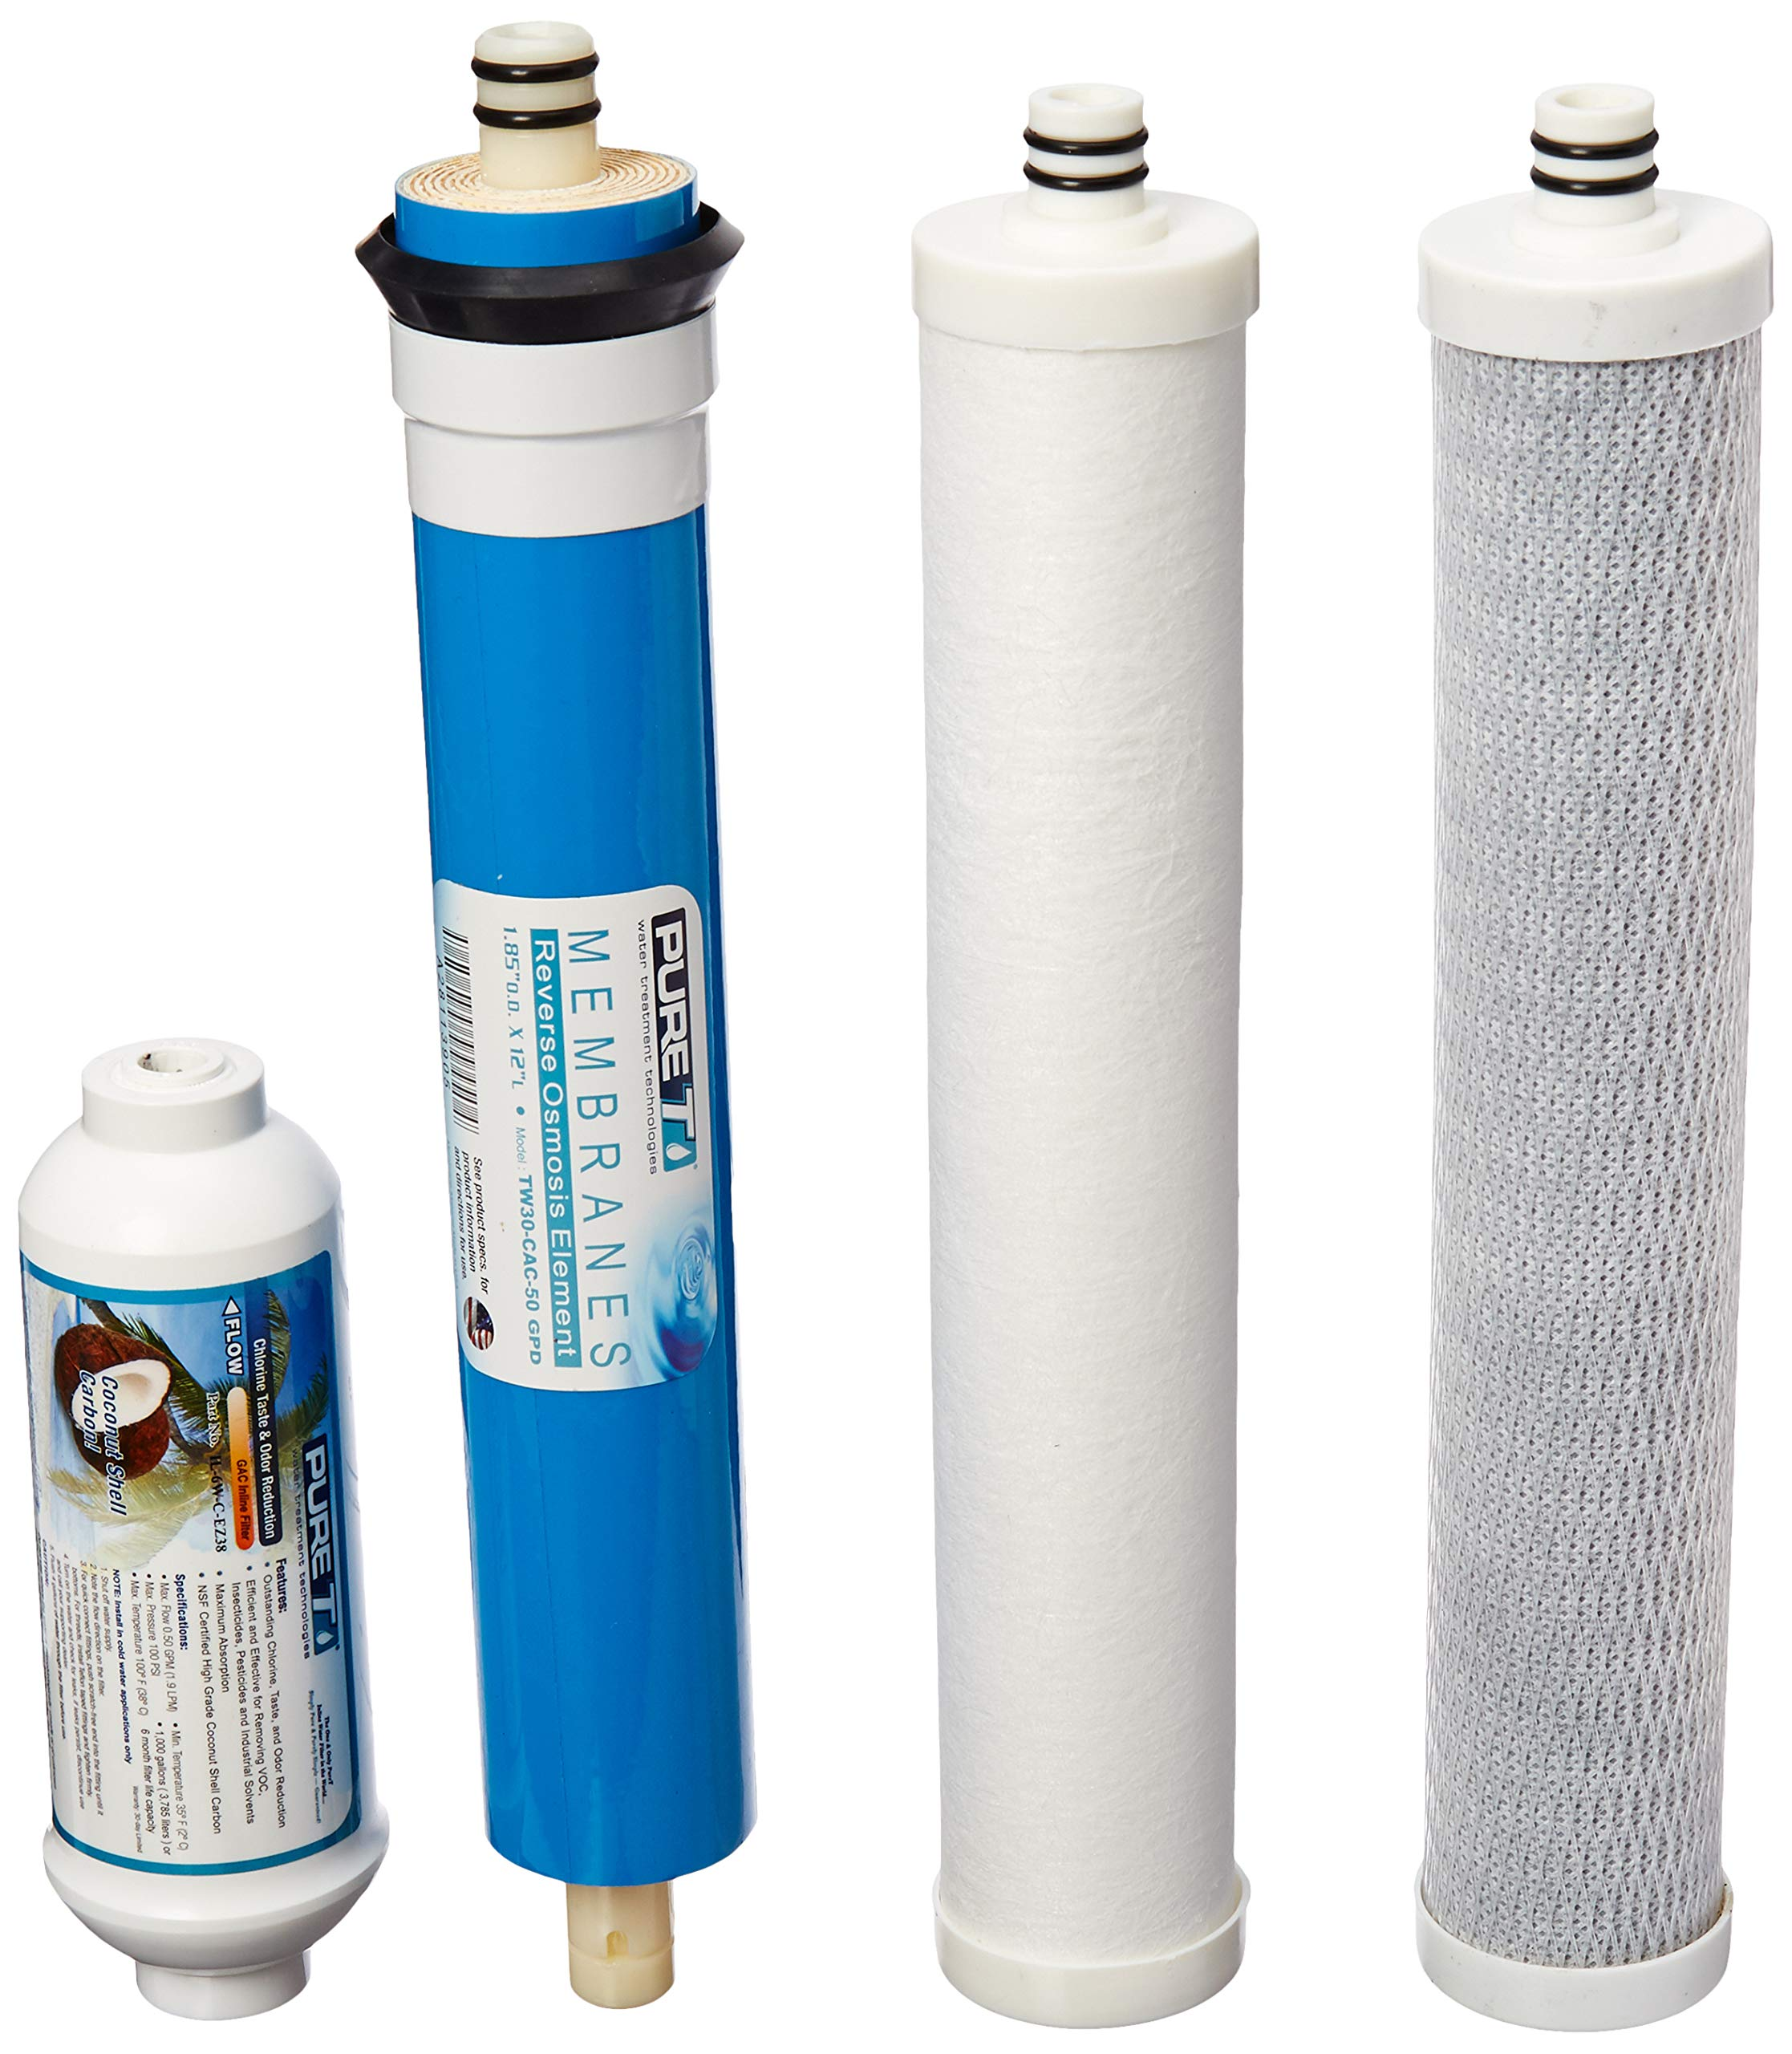 Filter Set with Membrane for Culligan AC-50 Reverse Osmosis System by IPW Industries